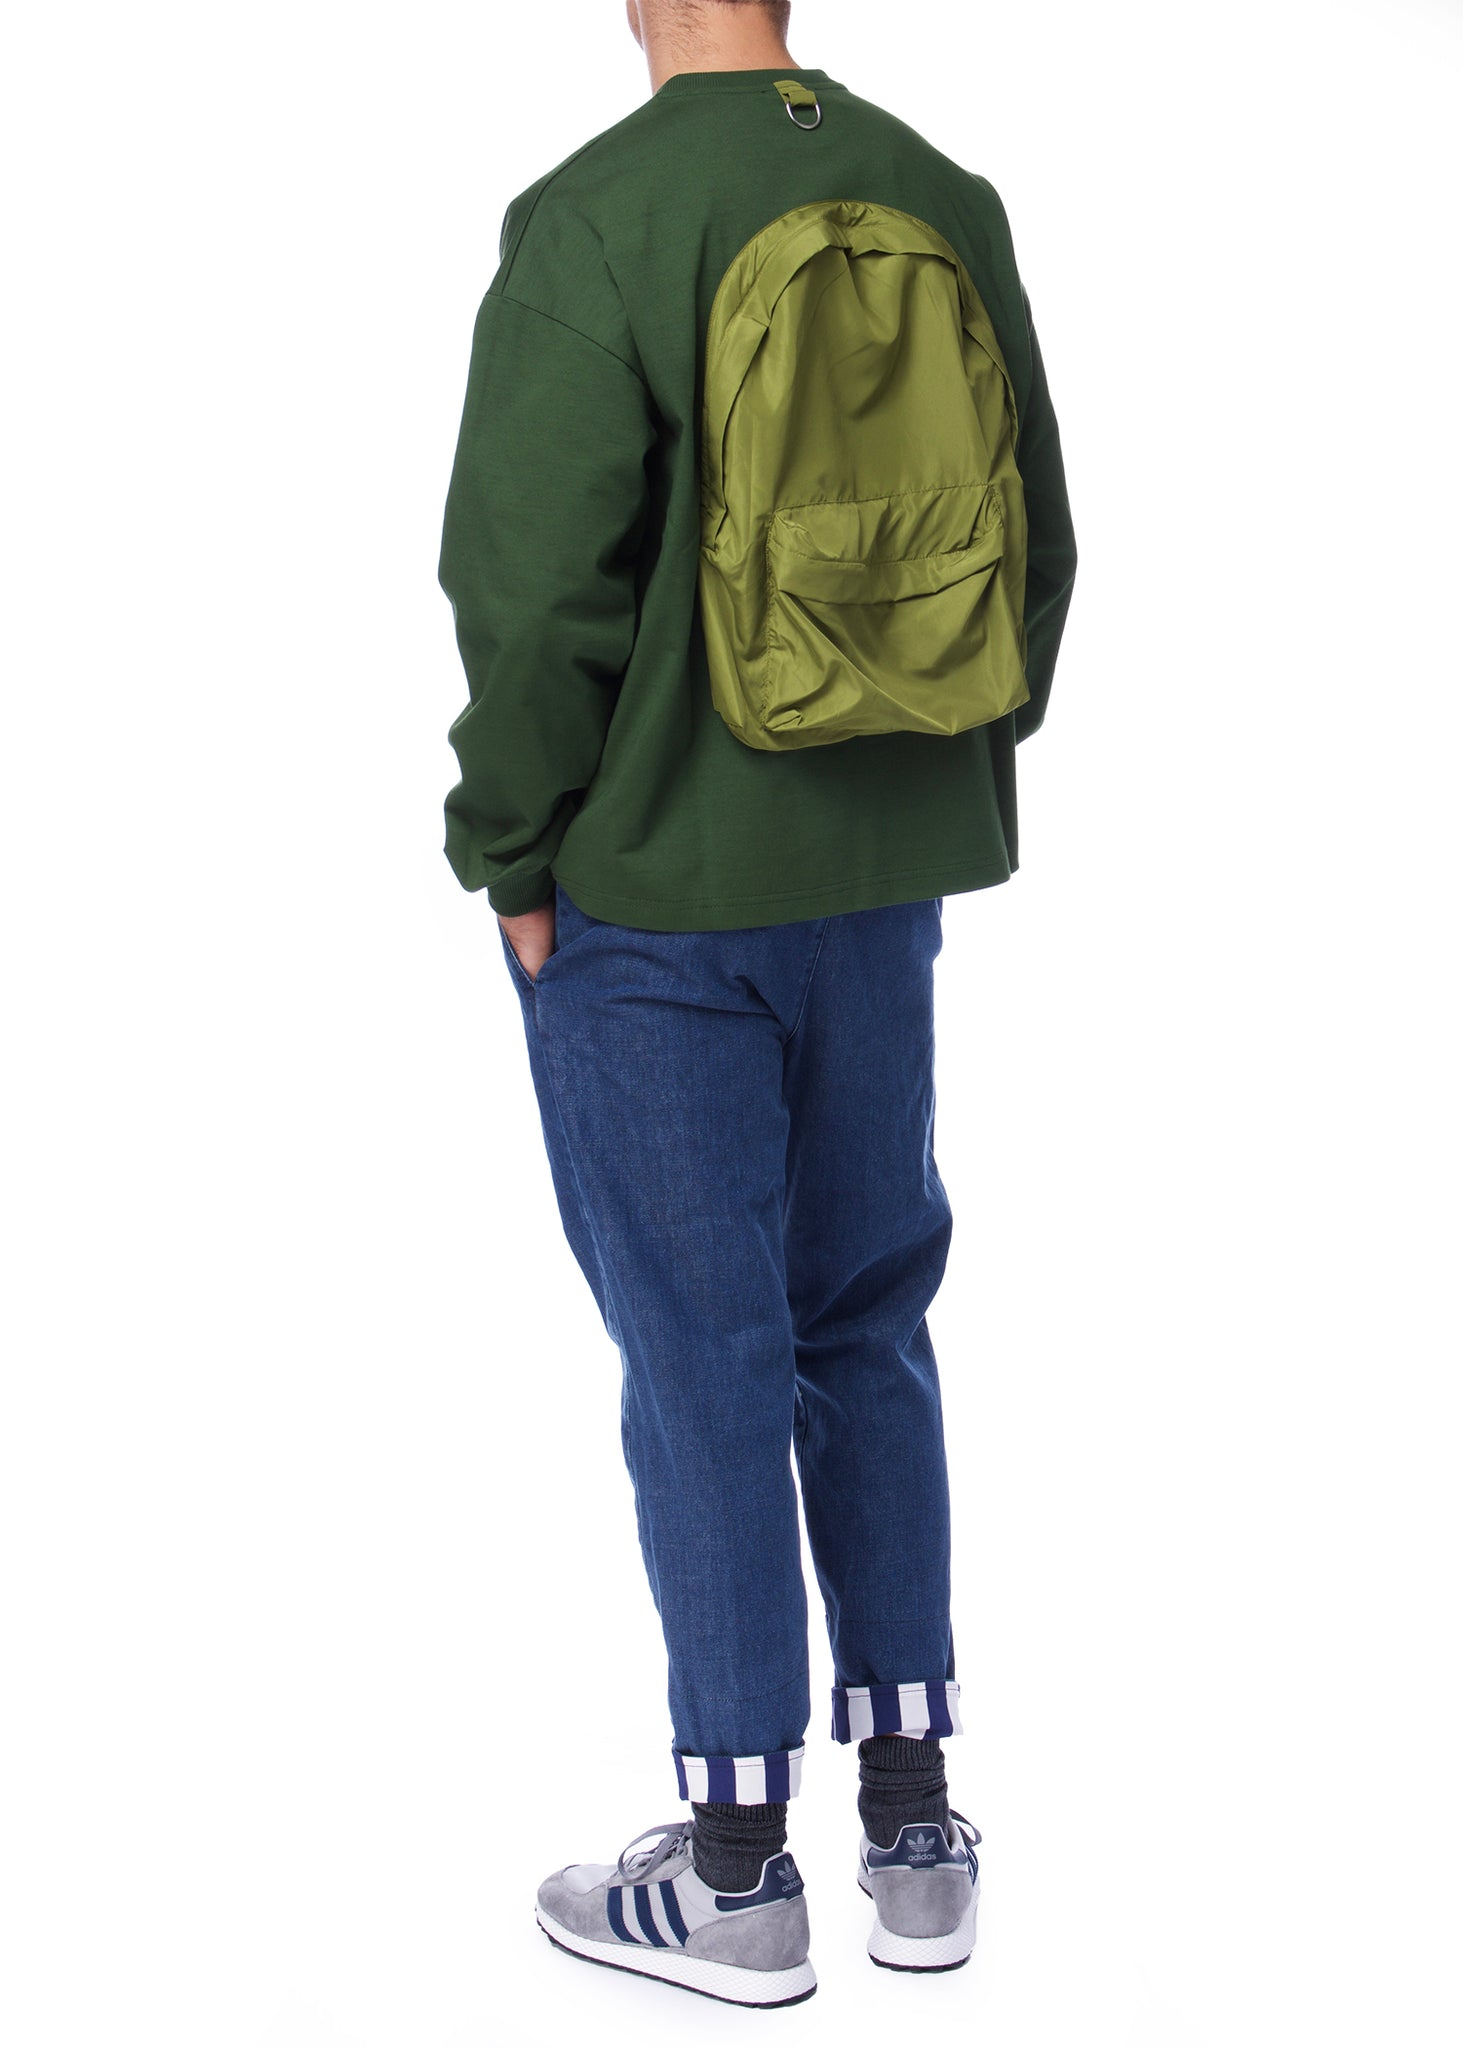 Pull à Sac à Dos Vert|Green Backpack Crewneck Sweatshirt